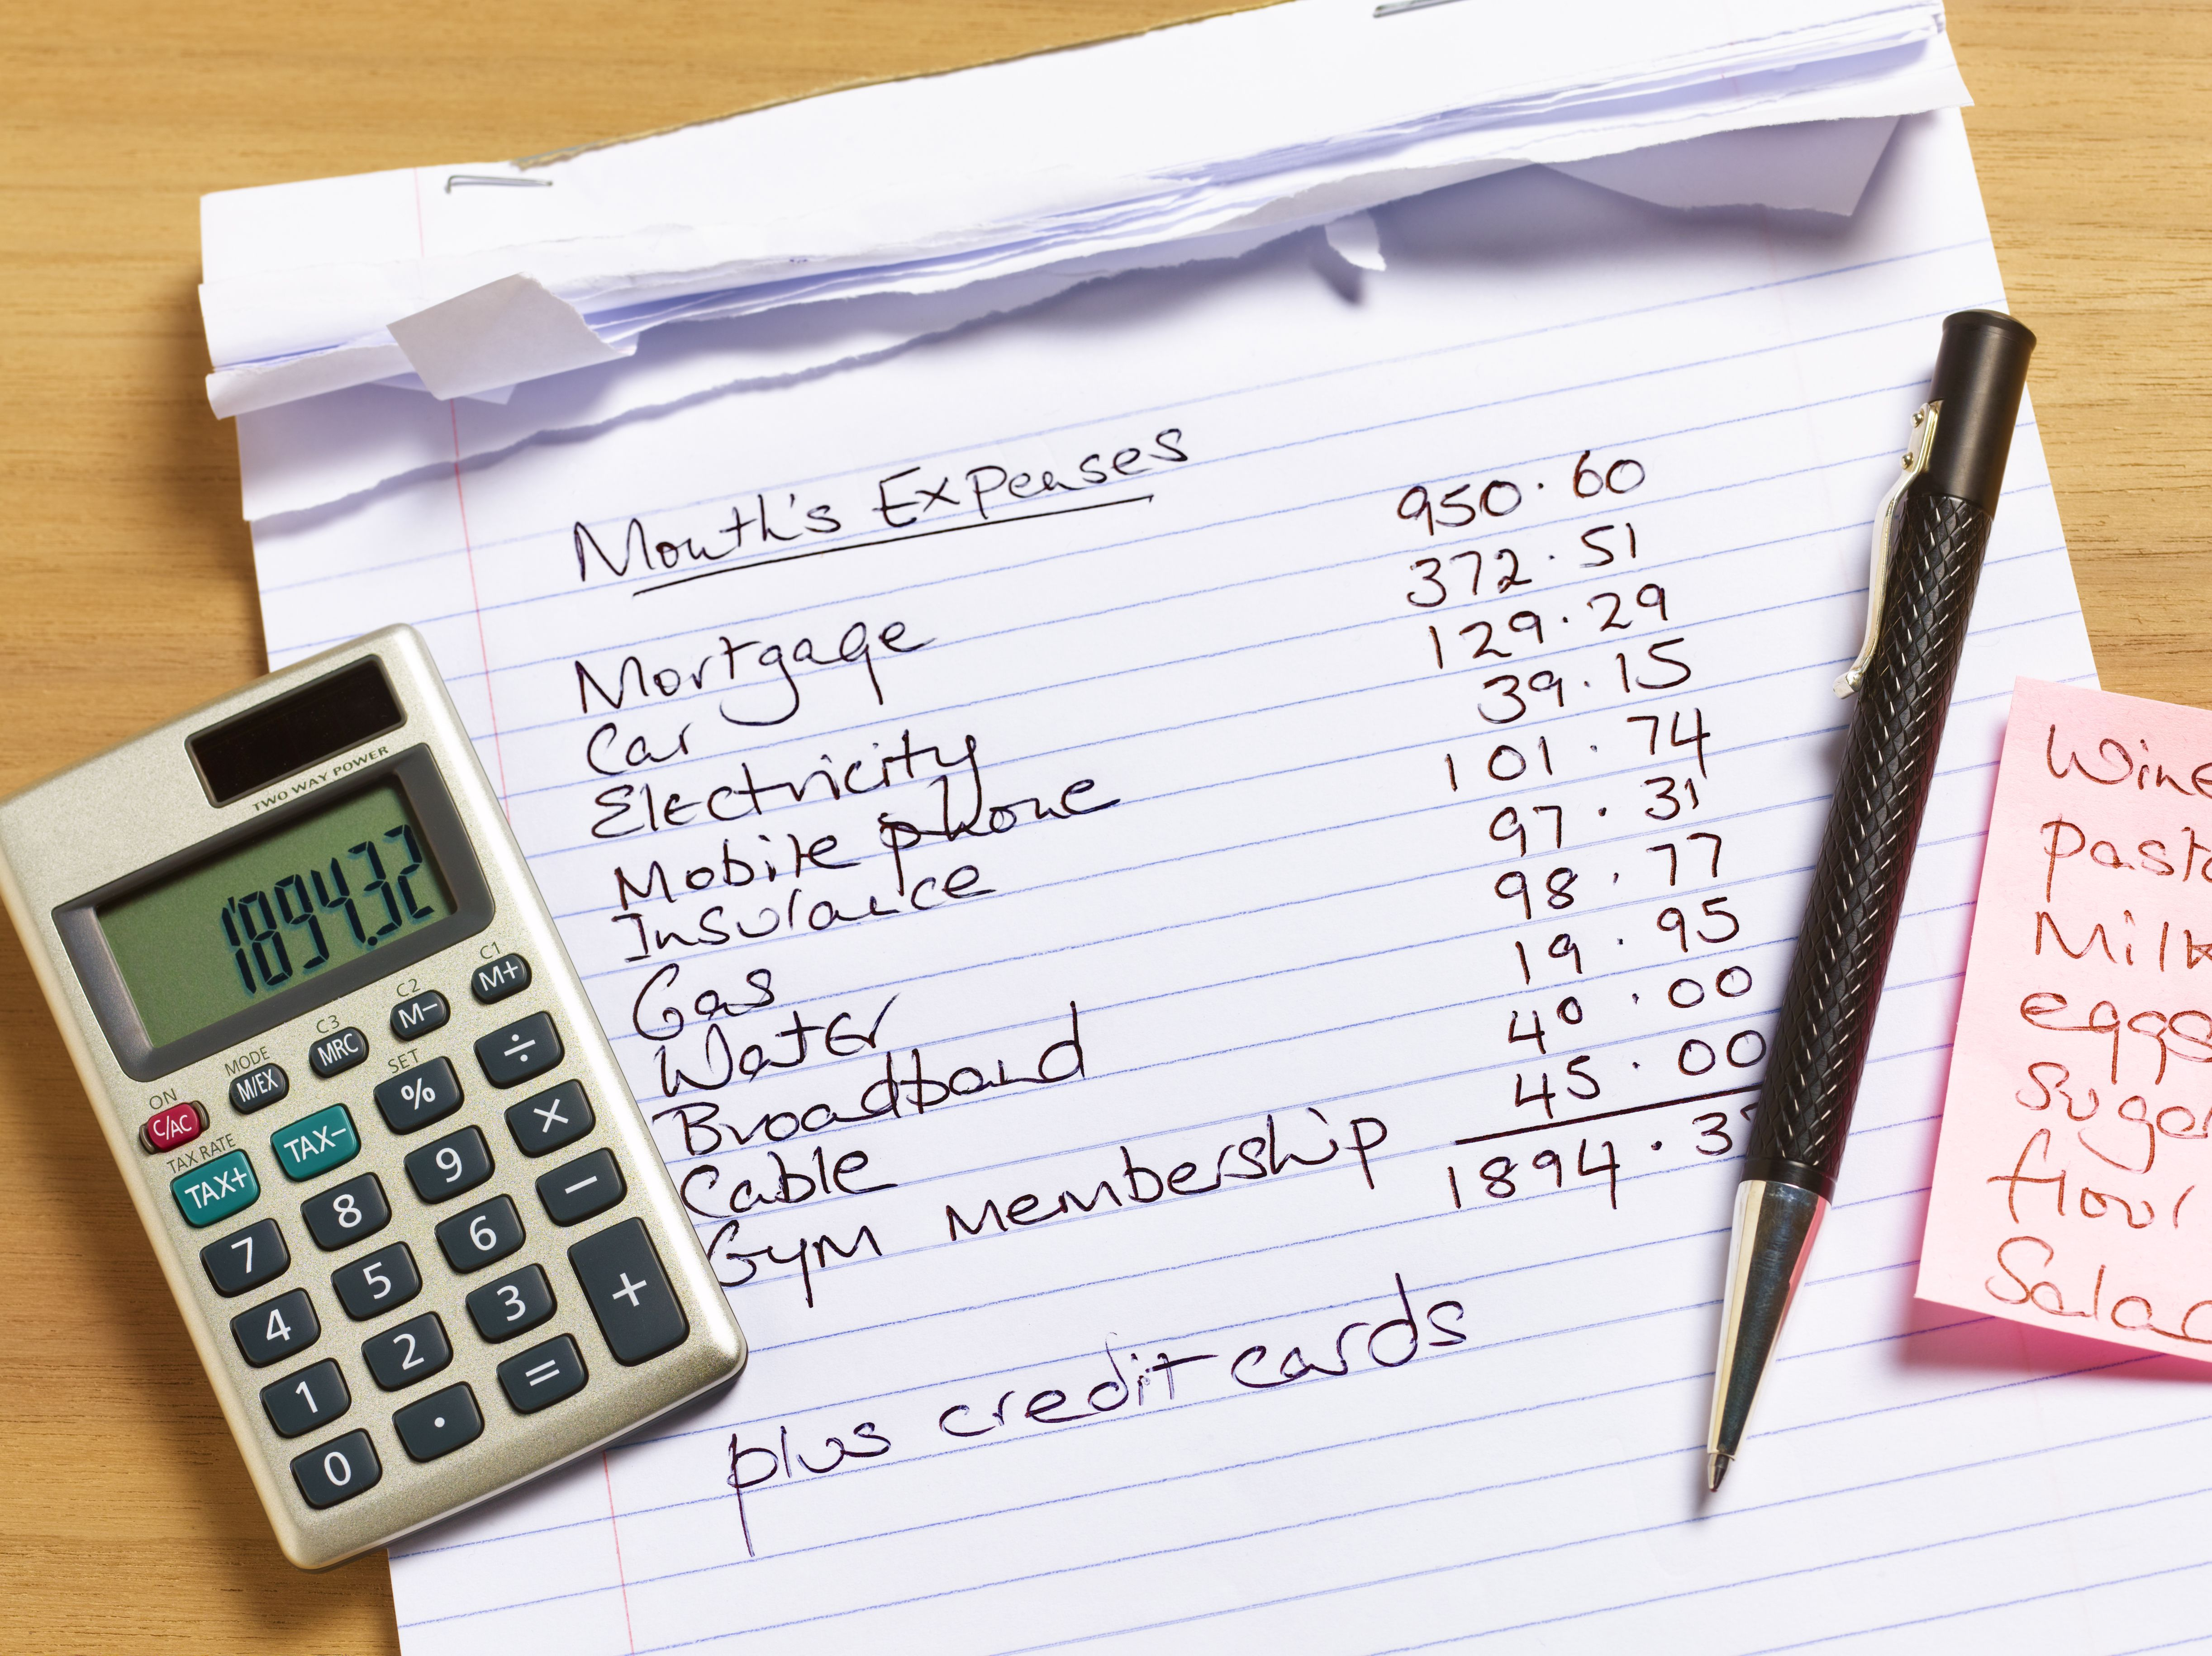 10 Simple Ways To Manage Your Money Better